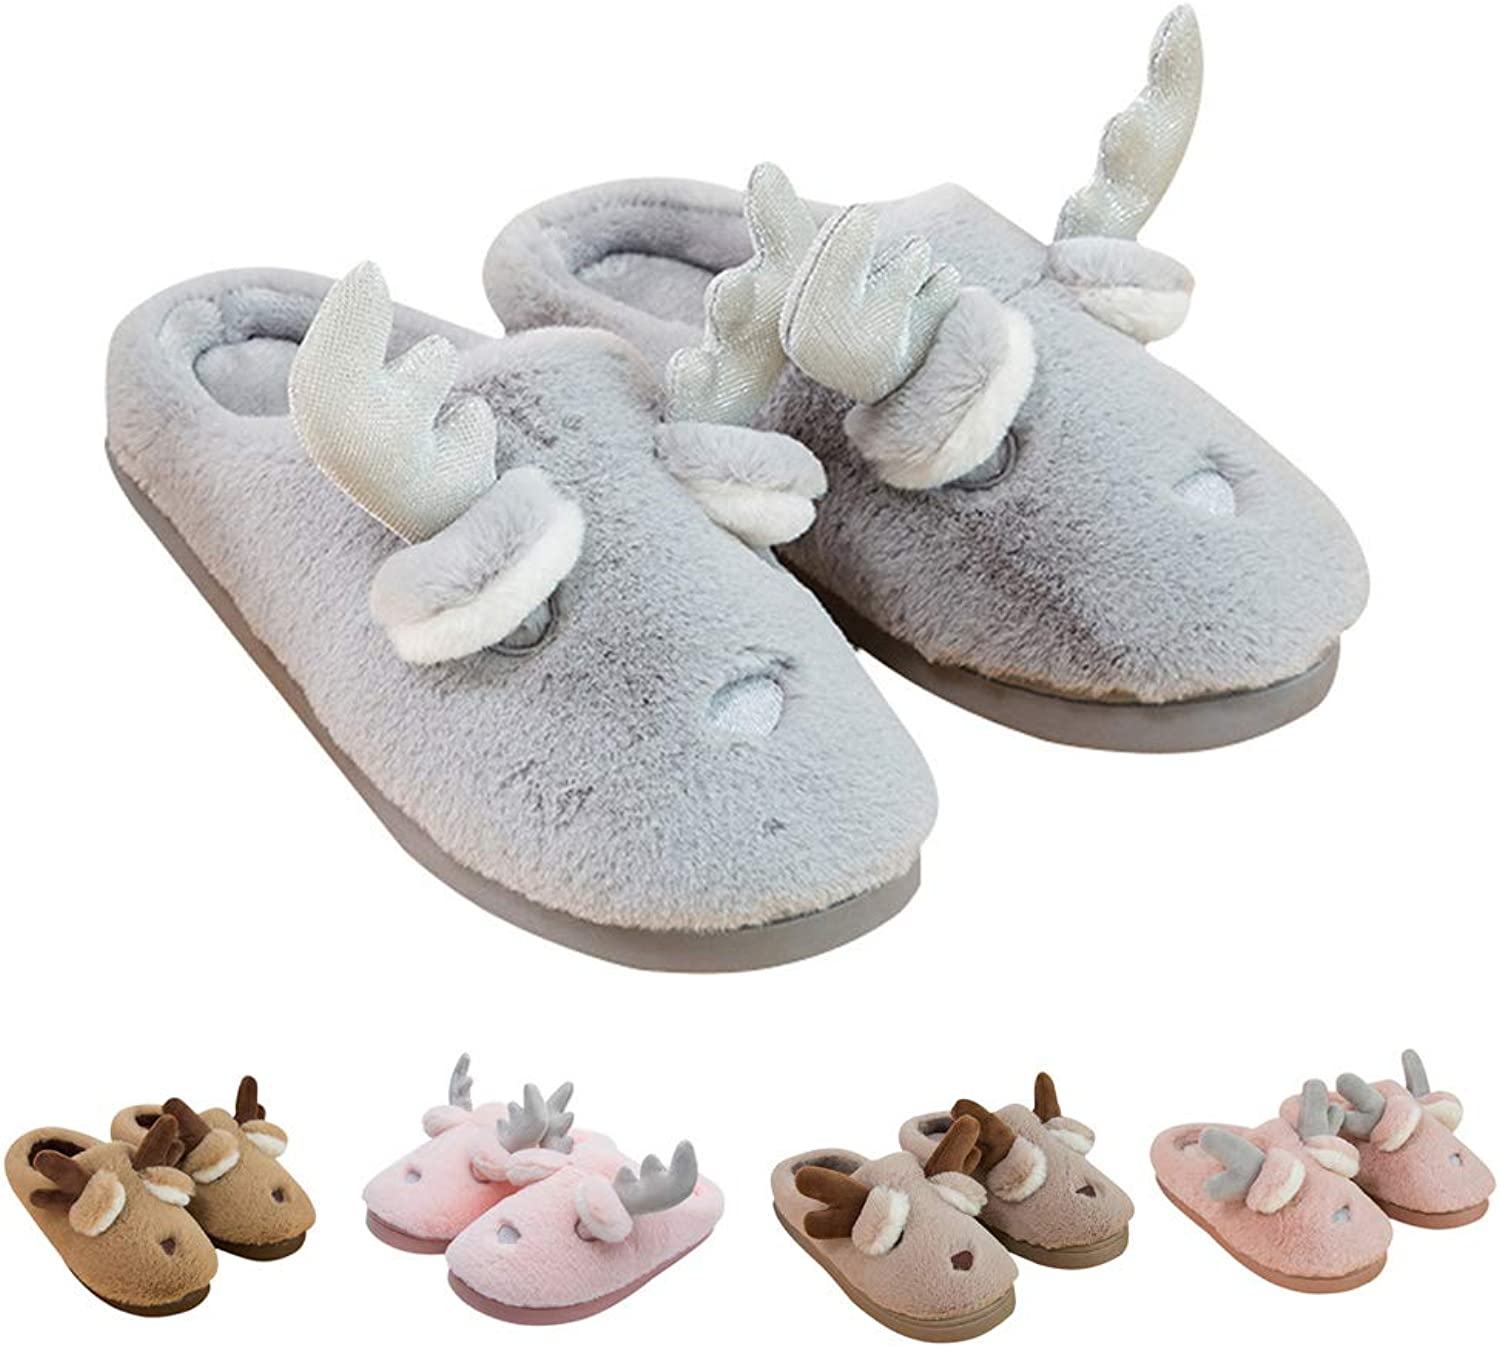 17mile Slippers for Men Women Closed Toe Lightweight Soft Memory Foam Cotton Plush Lined Indoor Home Slippers